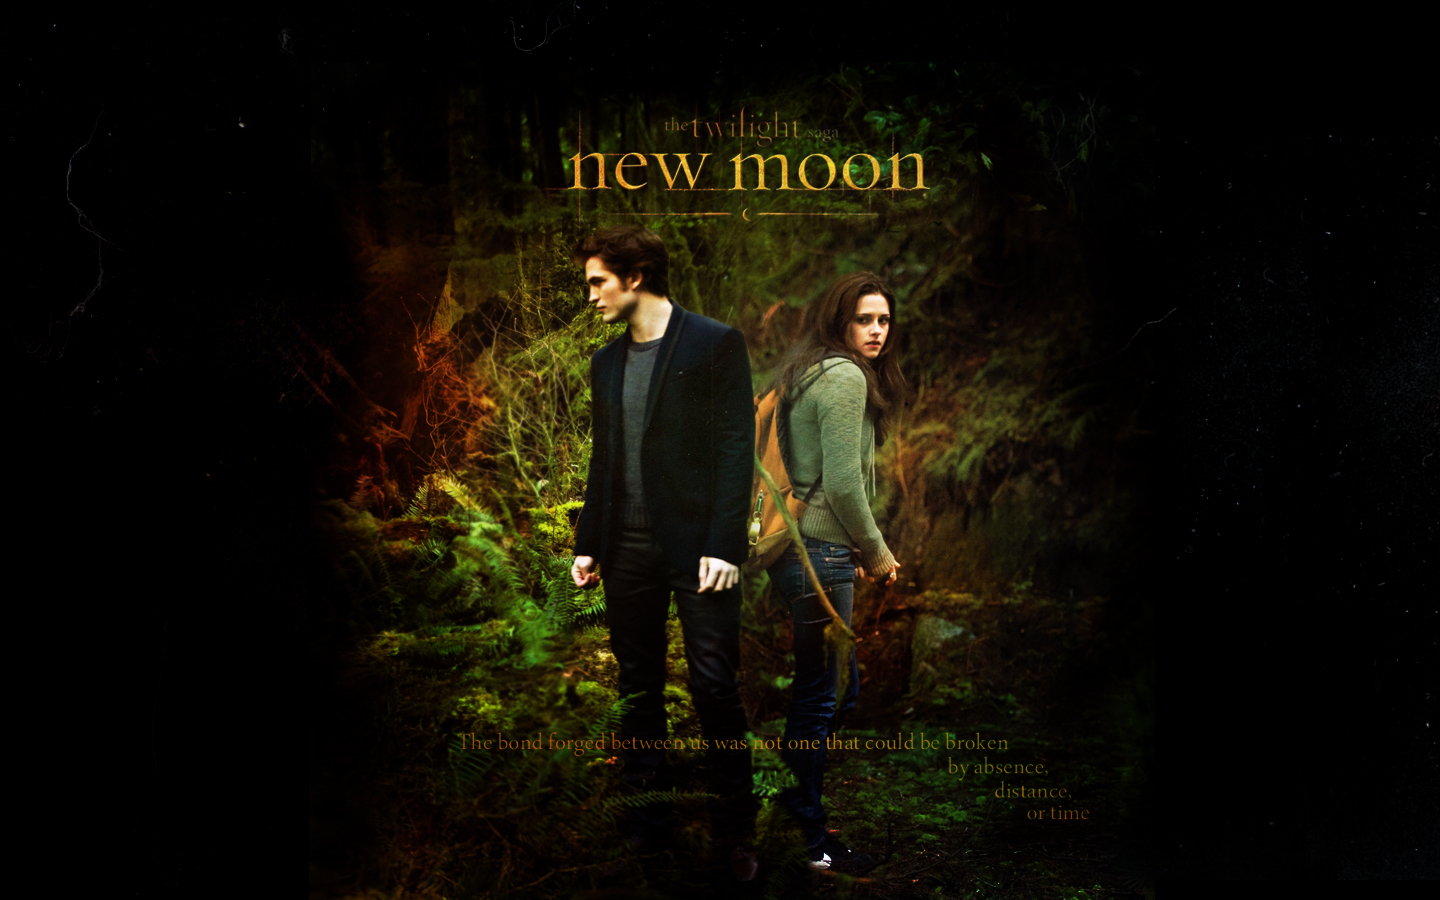 http://images2.fanpop.com/image/photos/8700000/New-Moon-twilight-series-8799495-1440-900.jpg